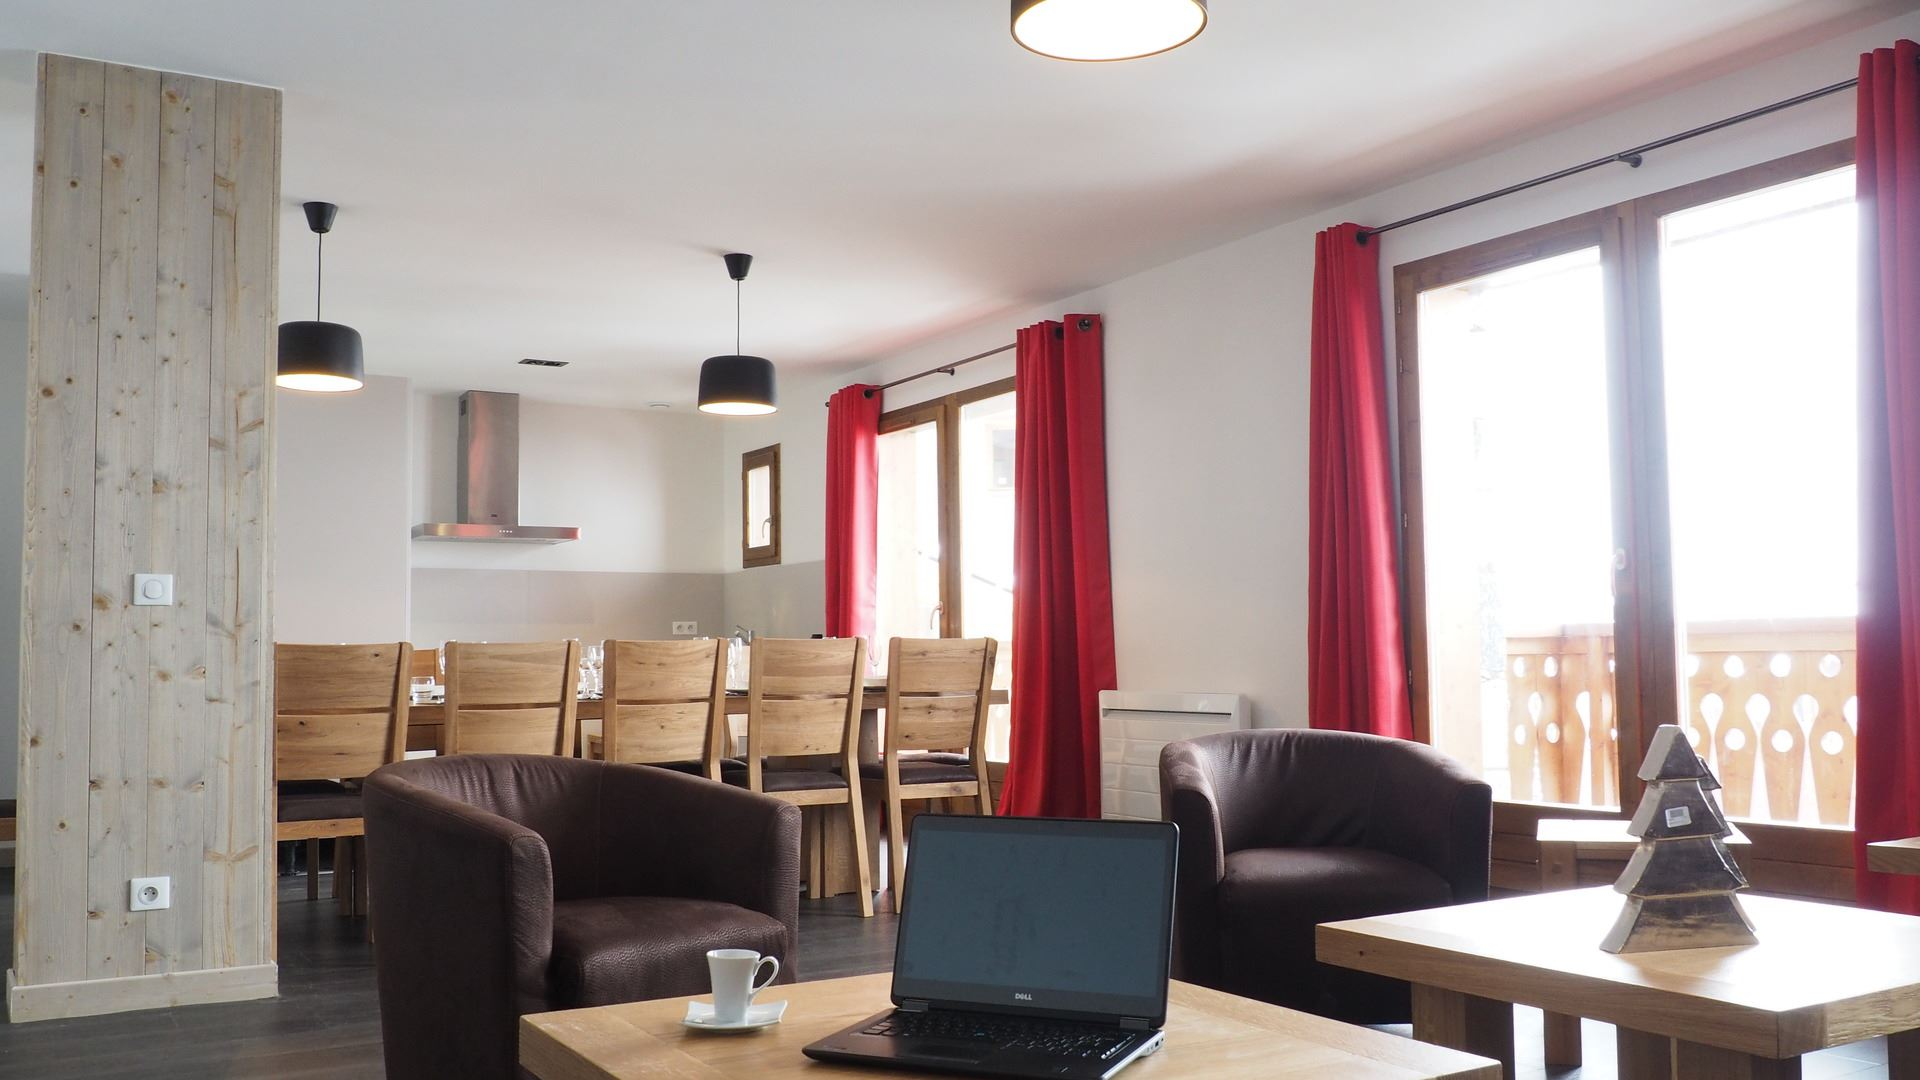 7 Rooms 14 Pers ski-in ski-out / LES CRISTAUX A